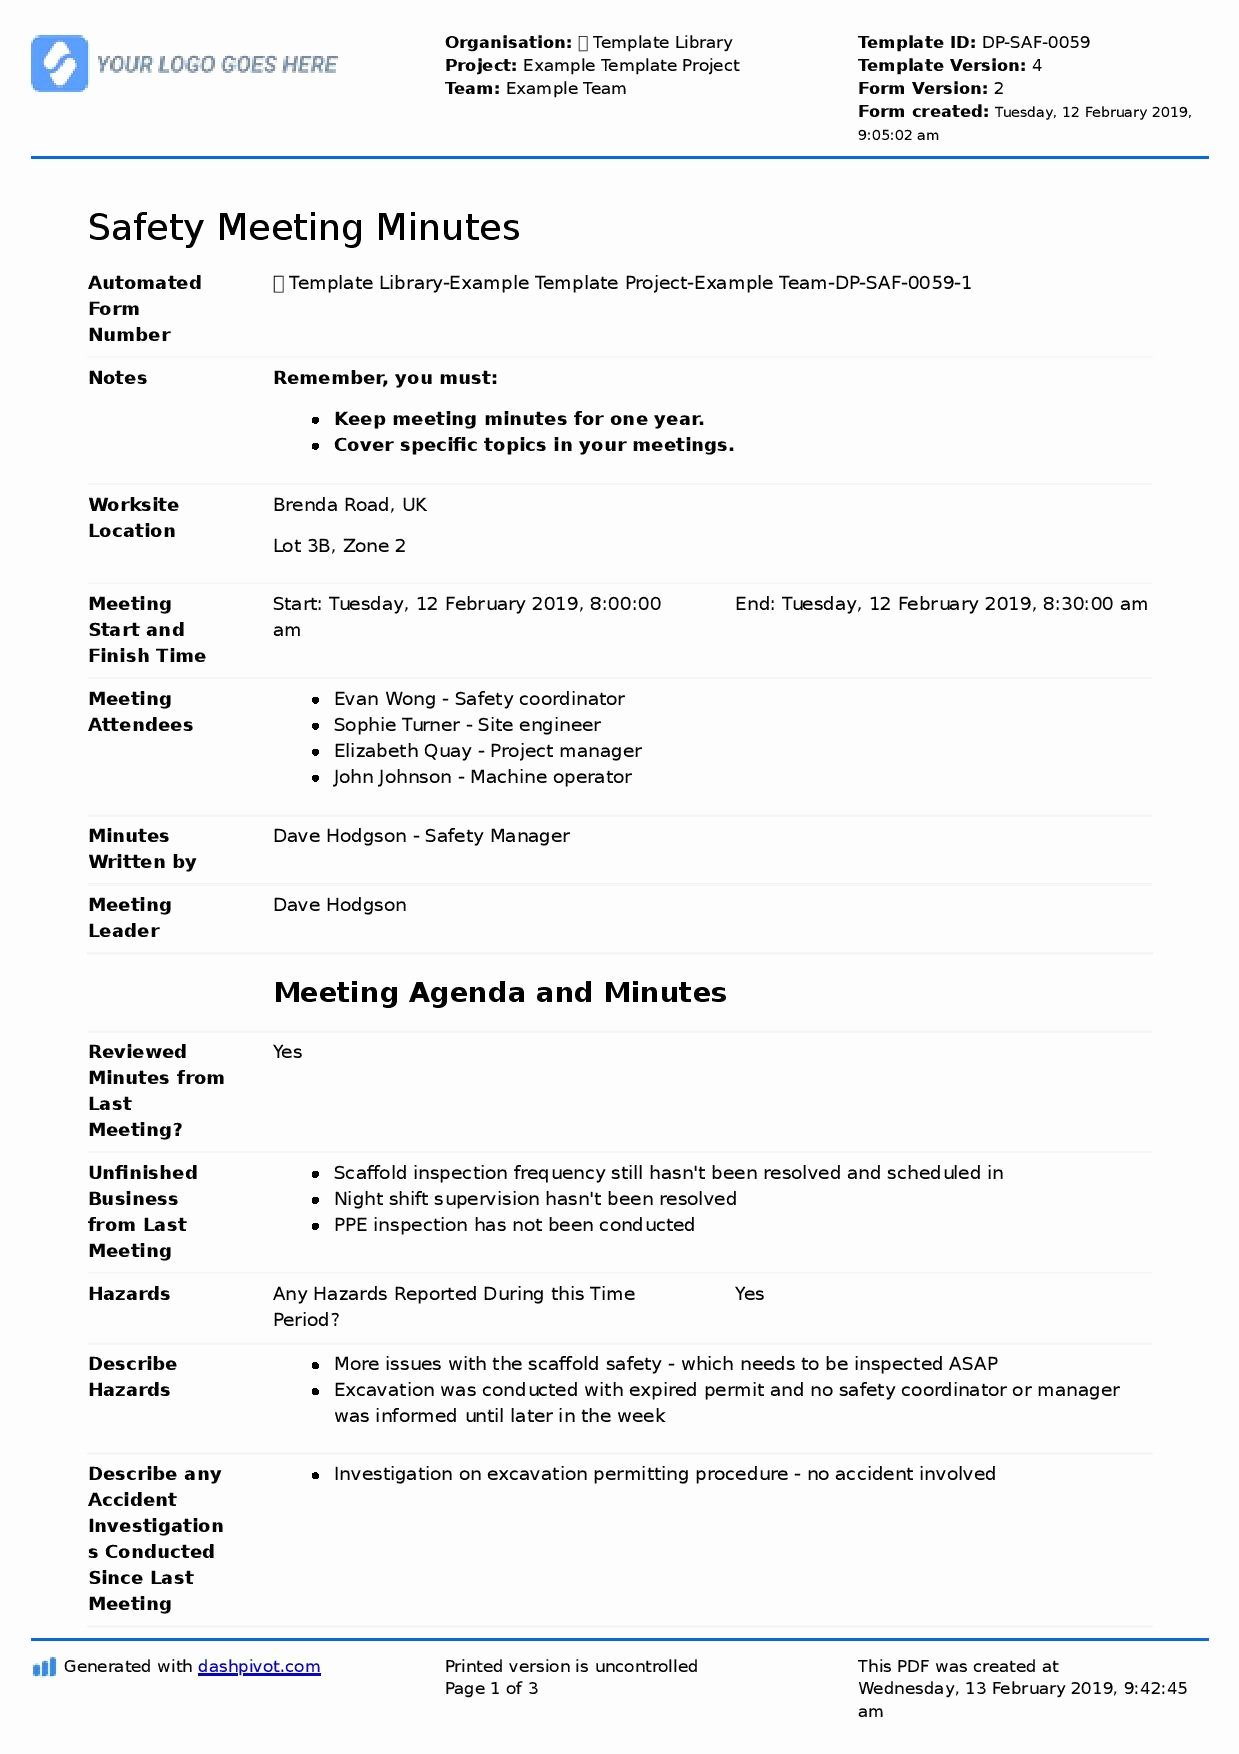 Meeting Minutes Agenda Template Best Of Safety Mittee Meeting Agenda and Minutes Template Use